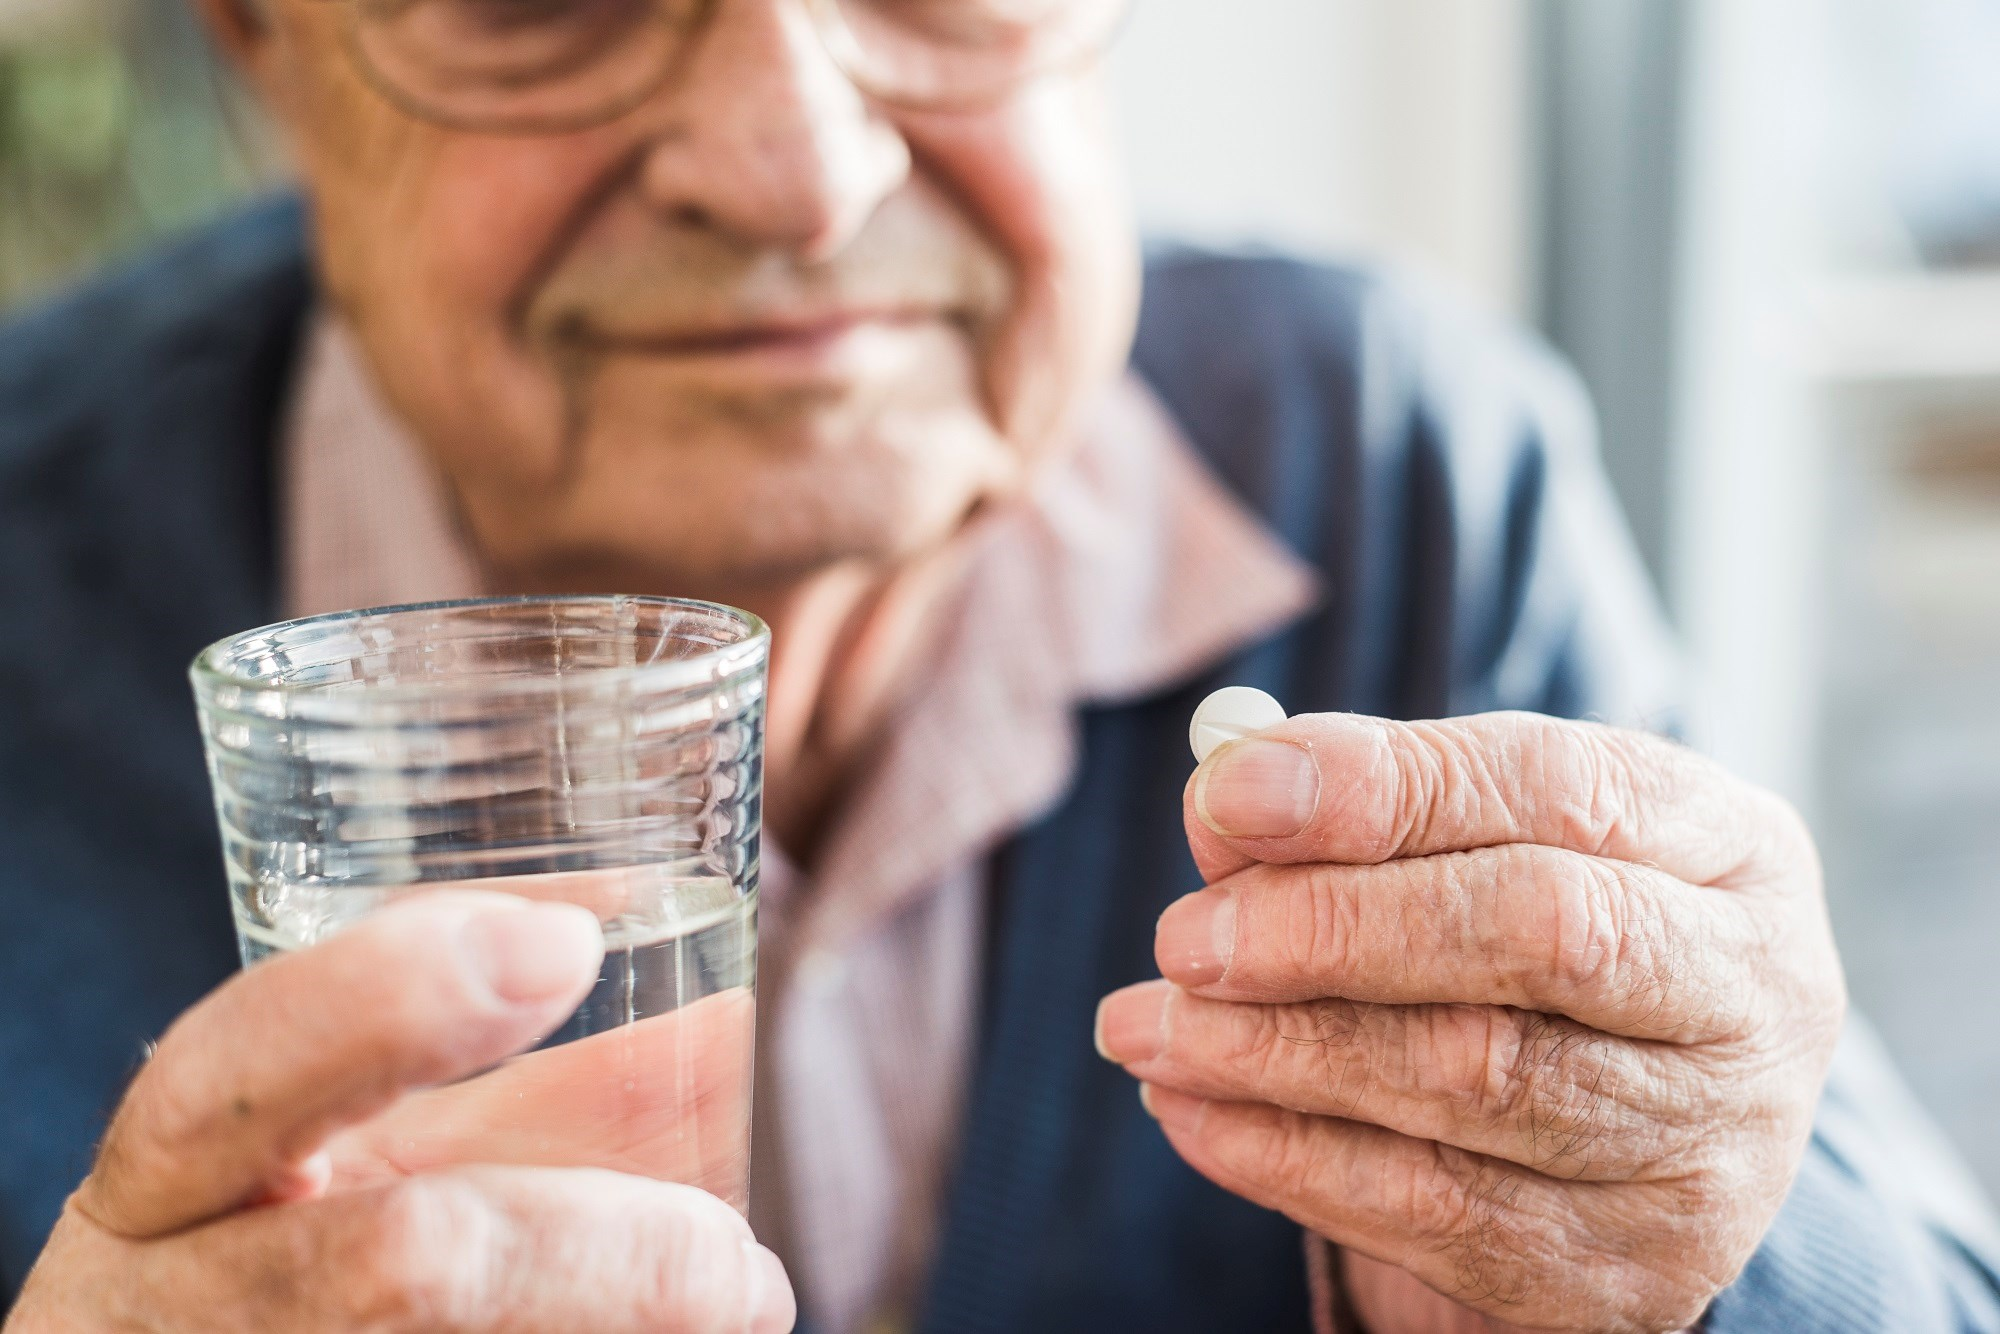 Analysis suggests treatment may add years to a patient's life.